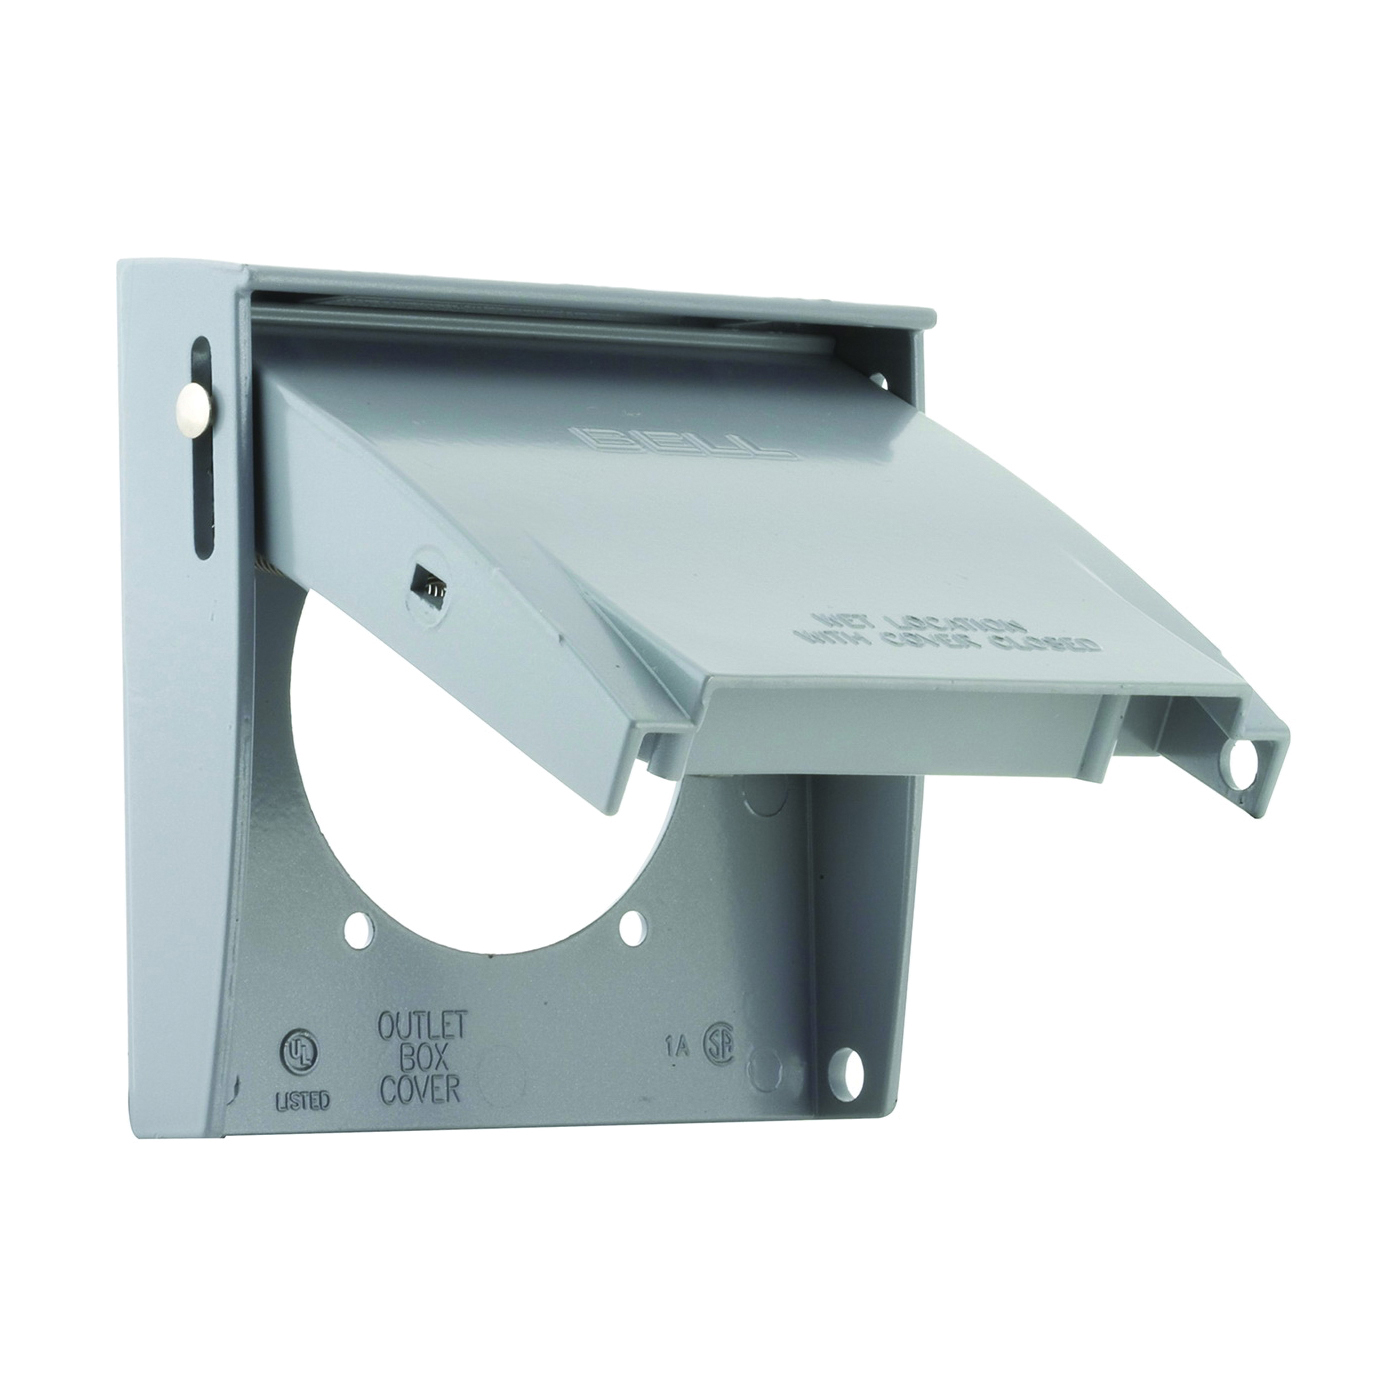 Picture of HUBBELL 5034-0 Cover, 2-5/8 in Dia, 4-1/2 in L, 4-9/16 in W, Aluminum, Gray, Powder-Coated